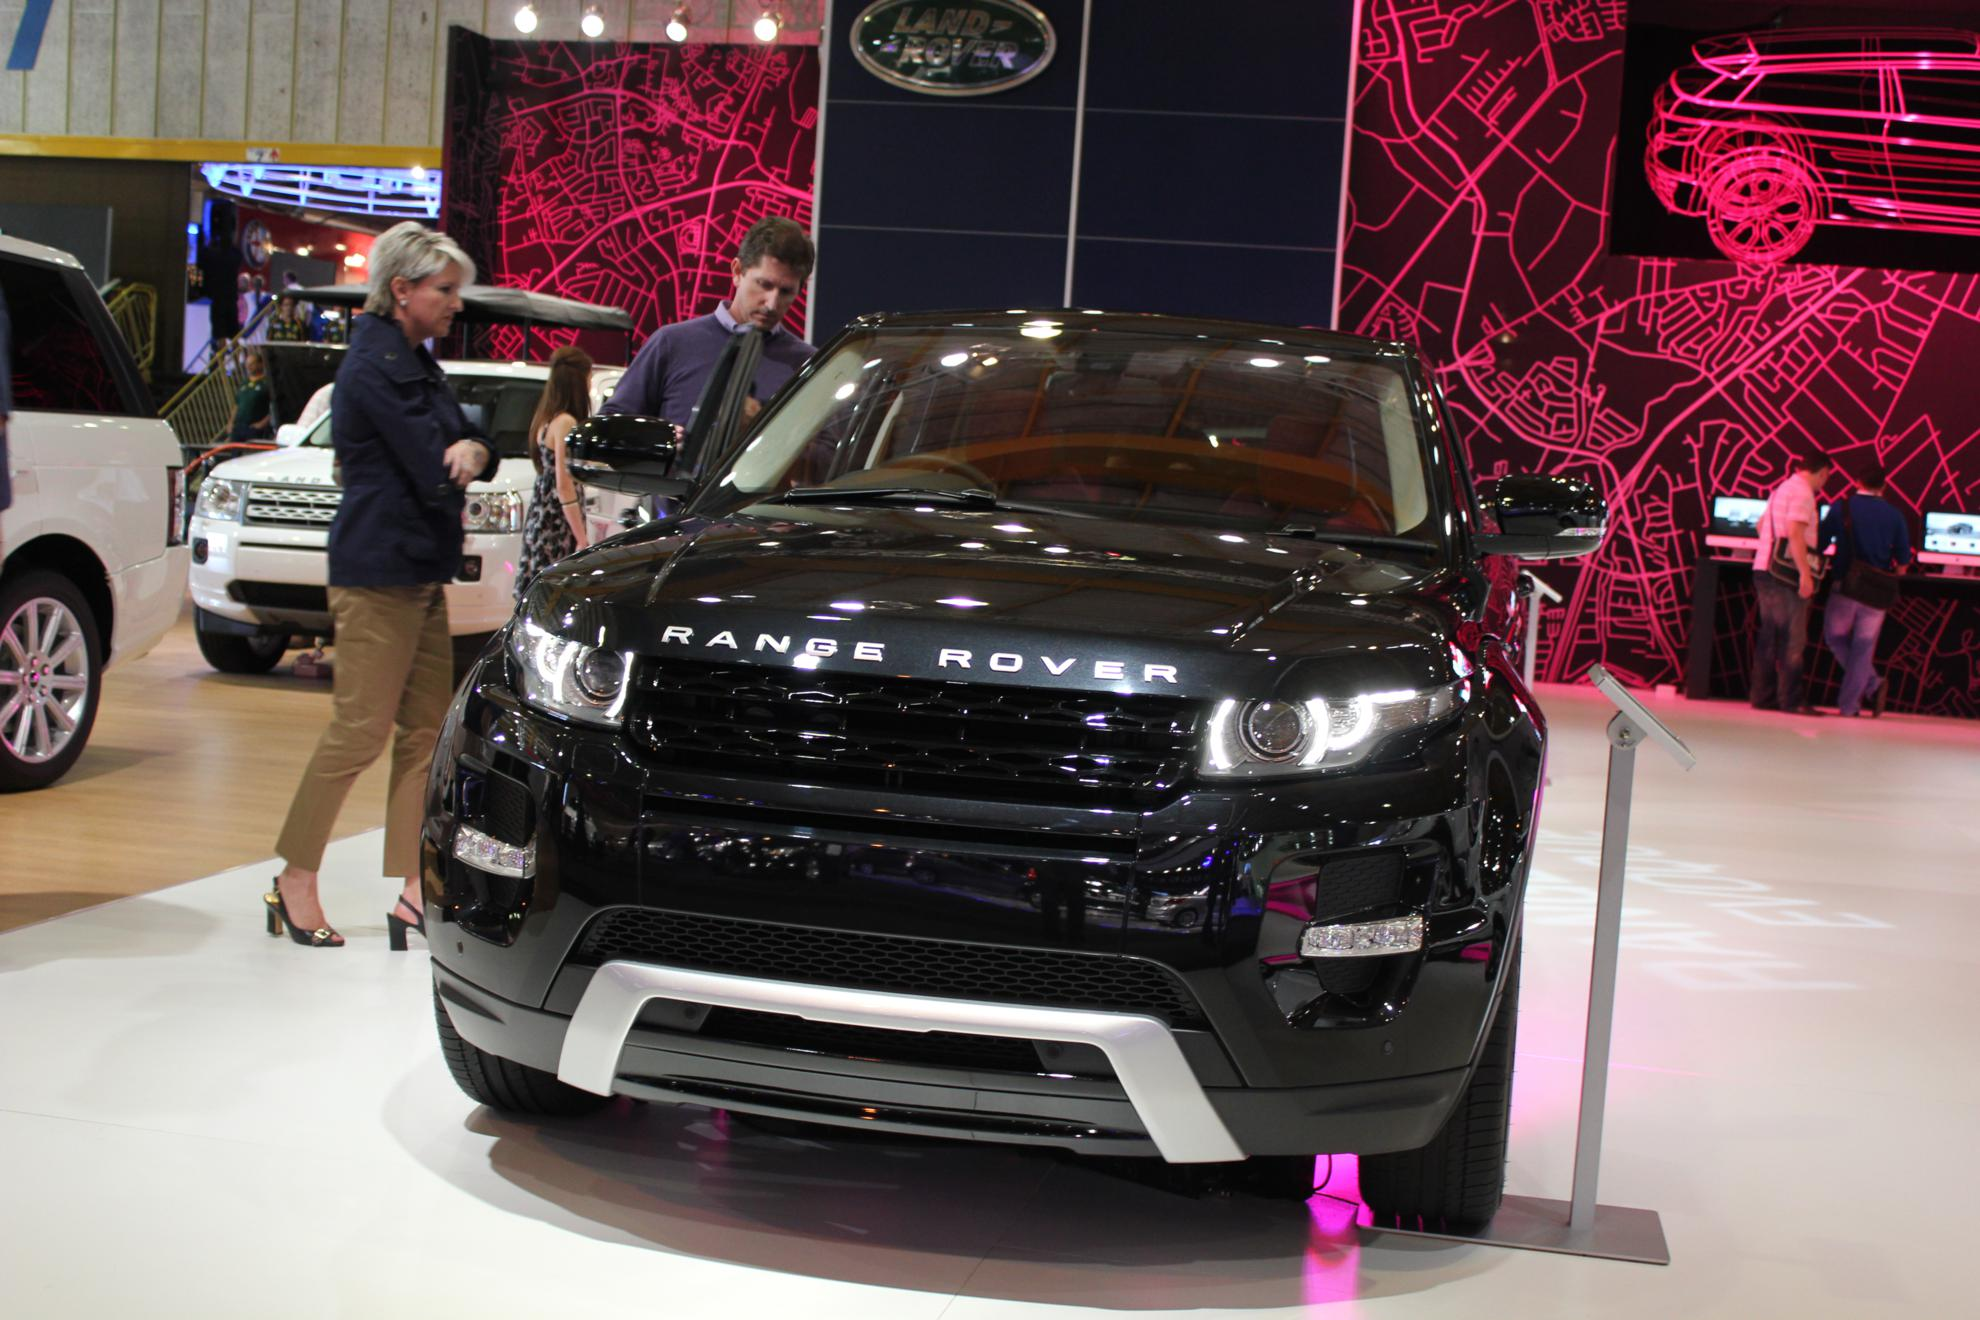 Black Range Rover Evoque